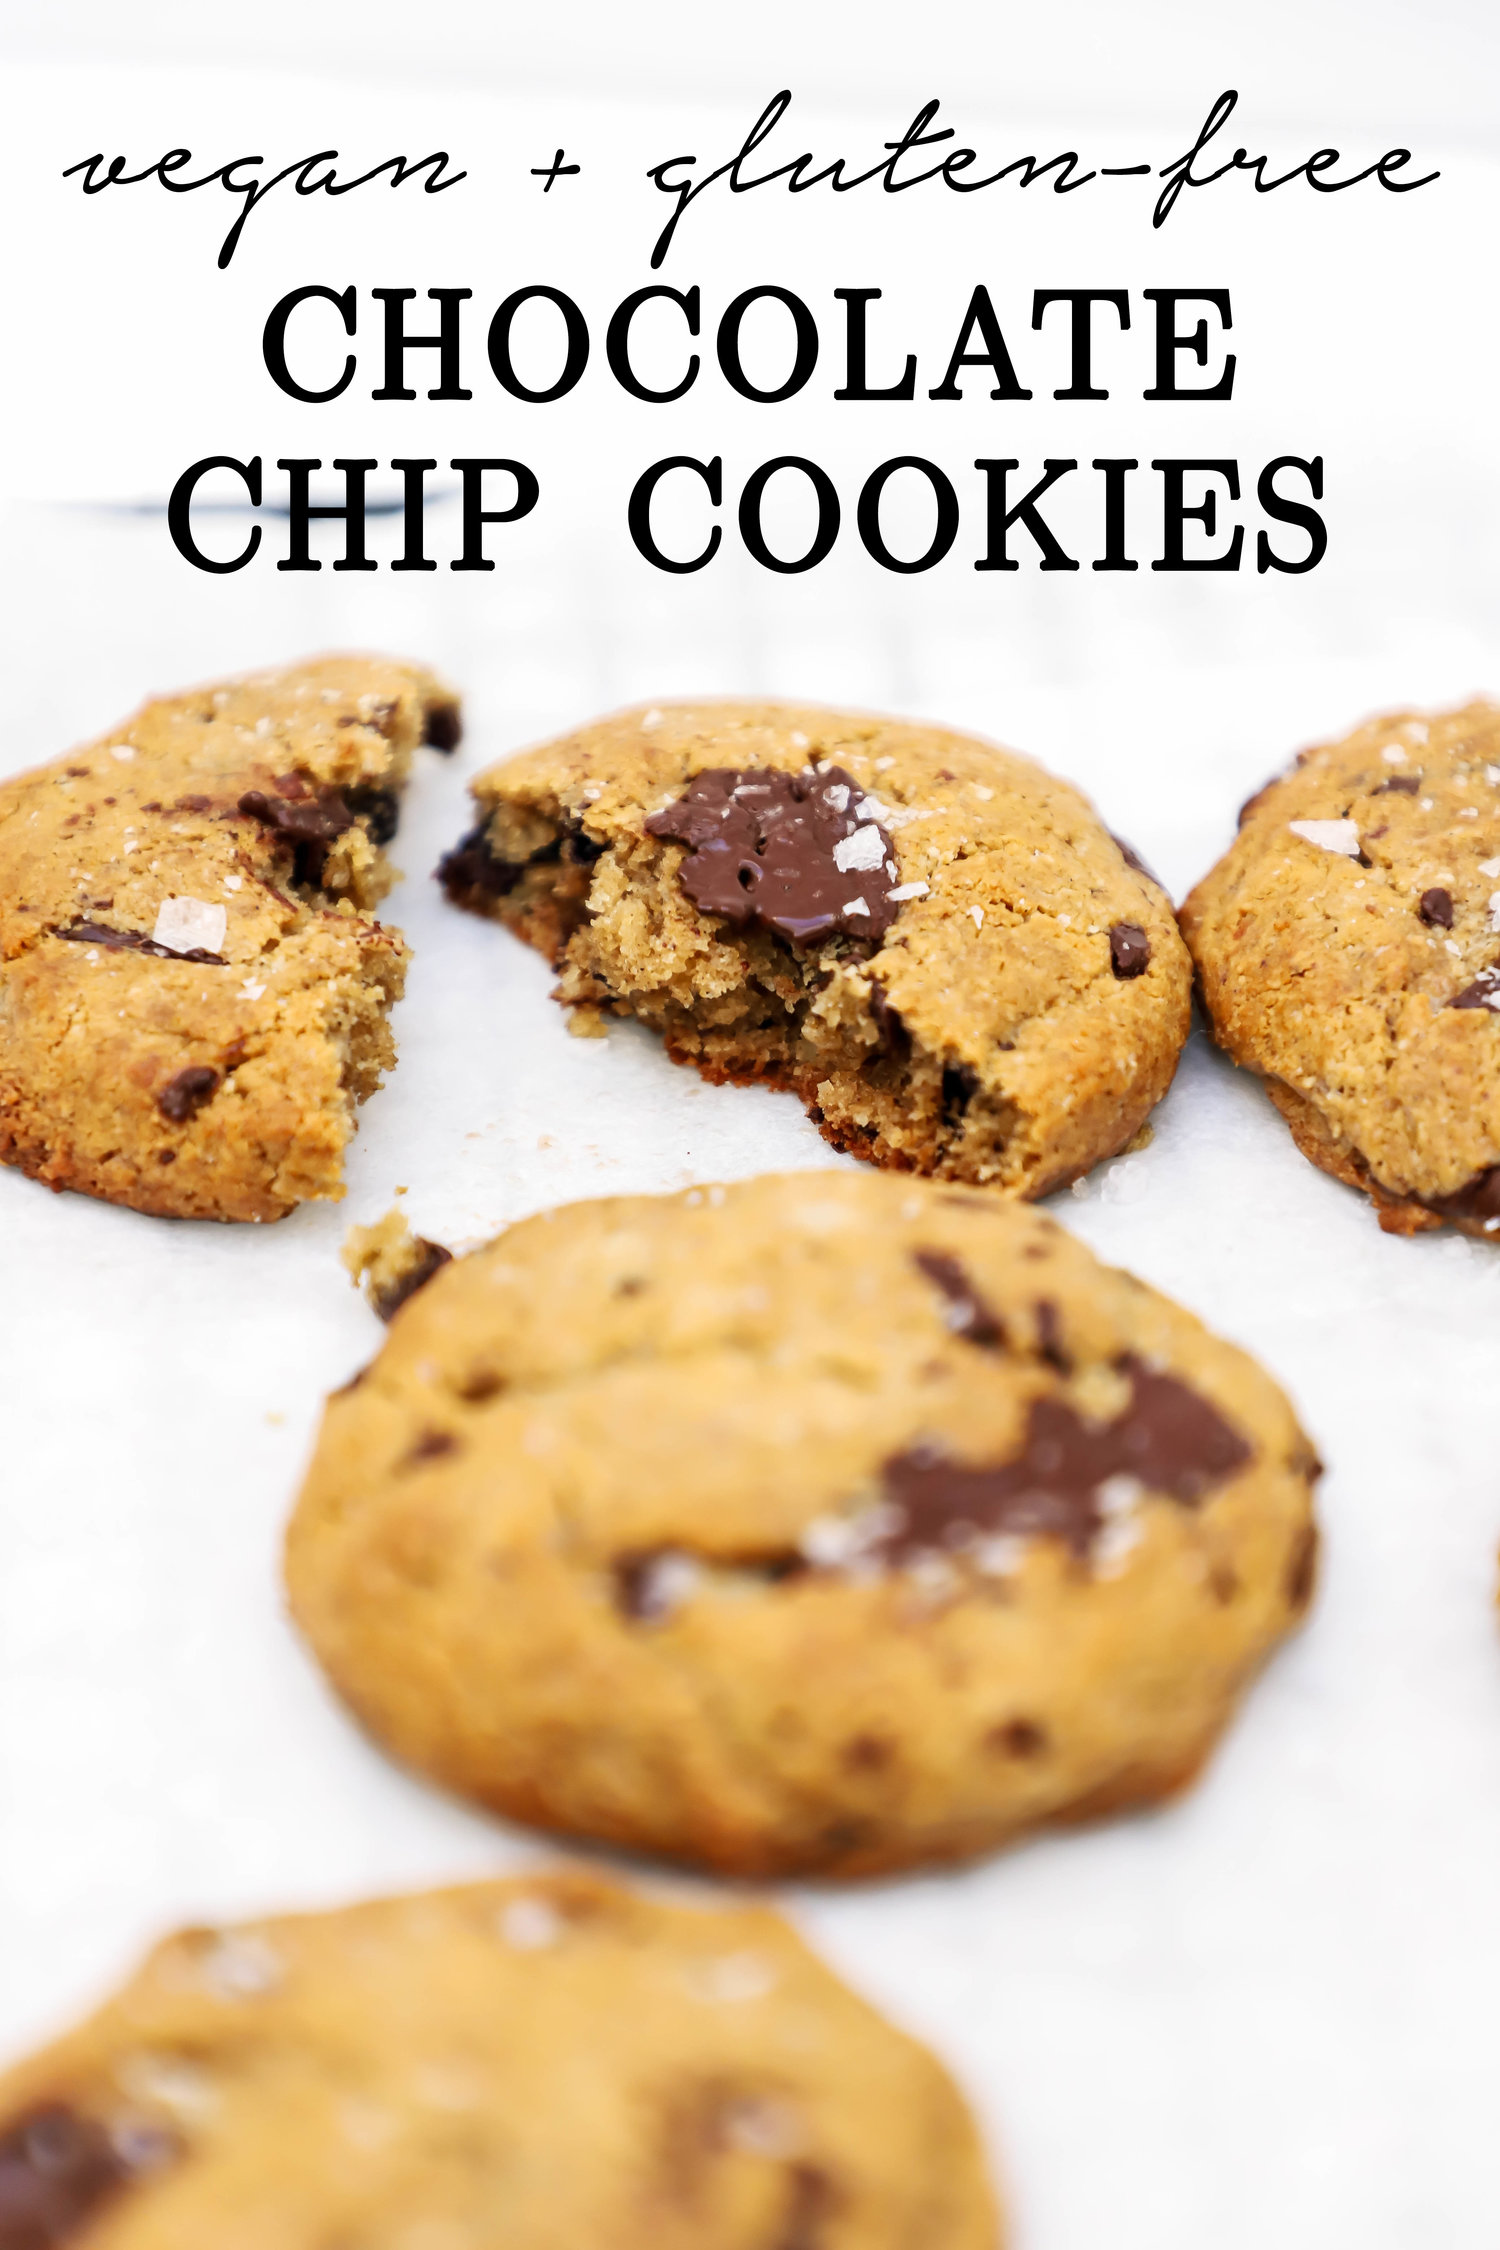 Vegan and Gluten-free Chocolate Chip Cookies